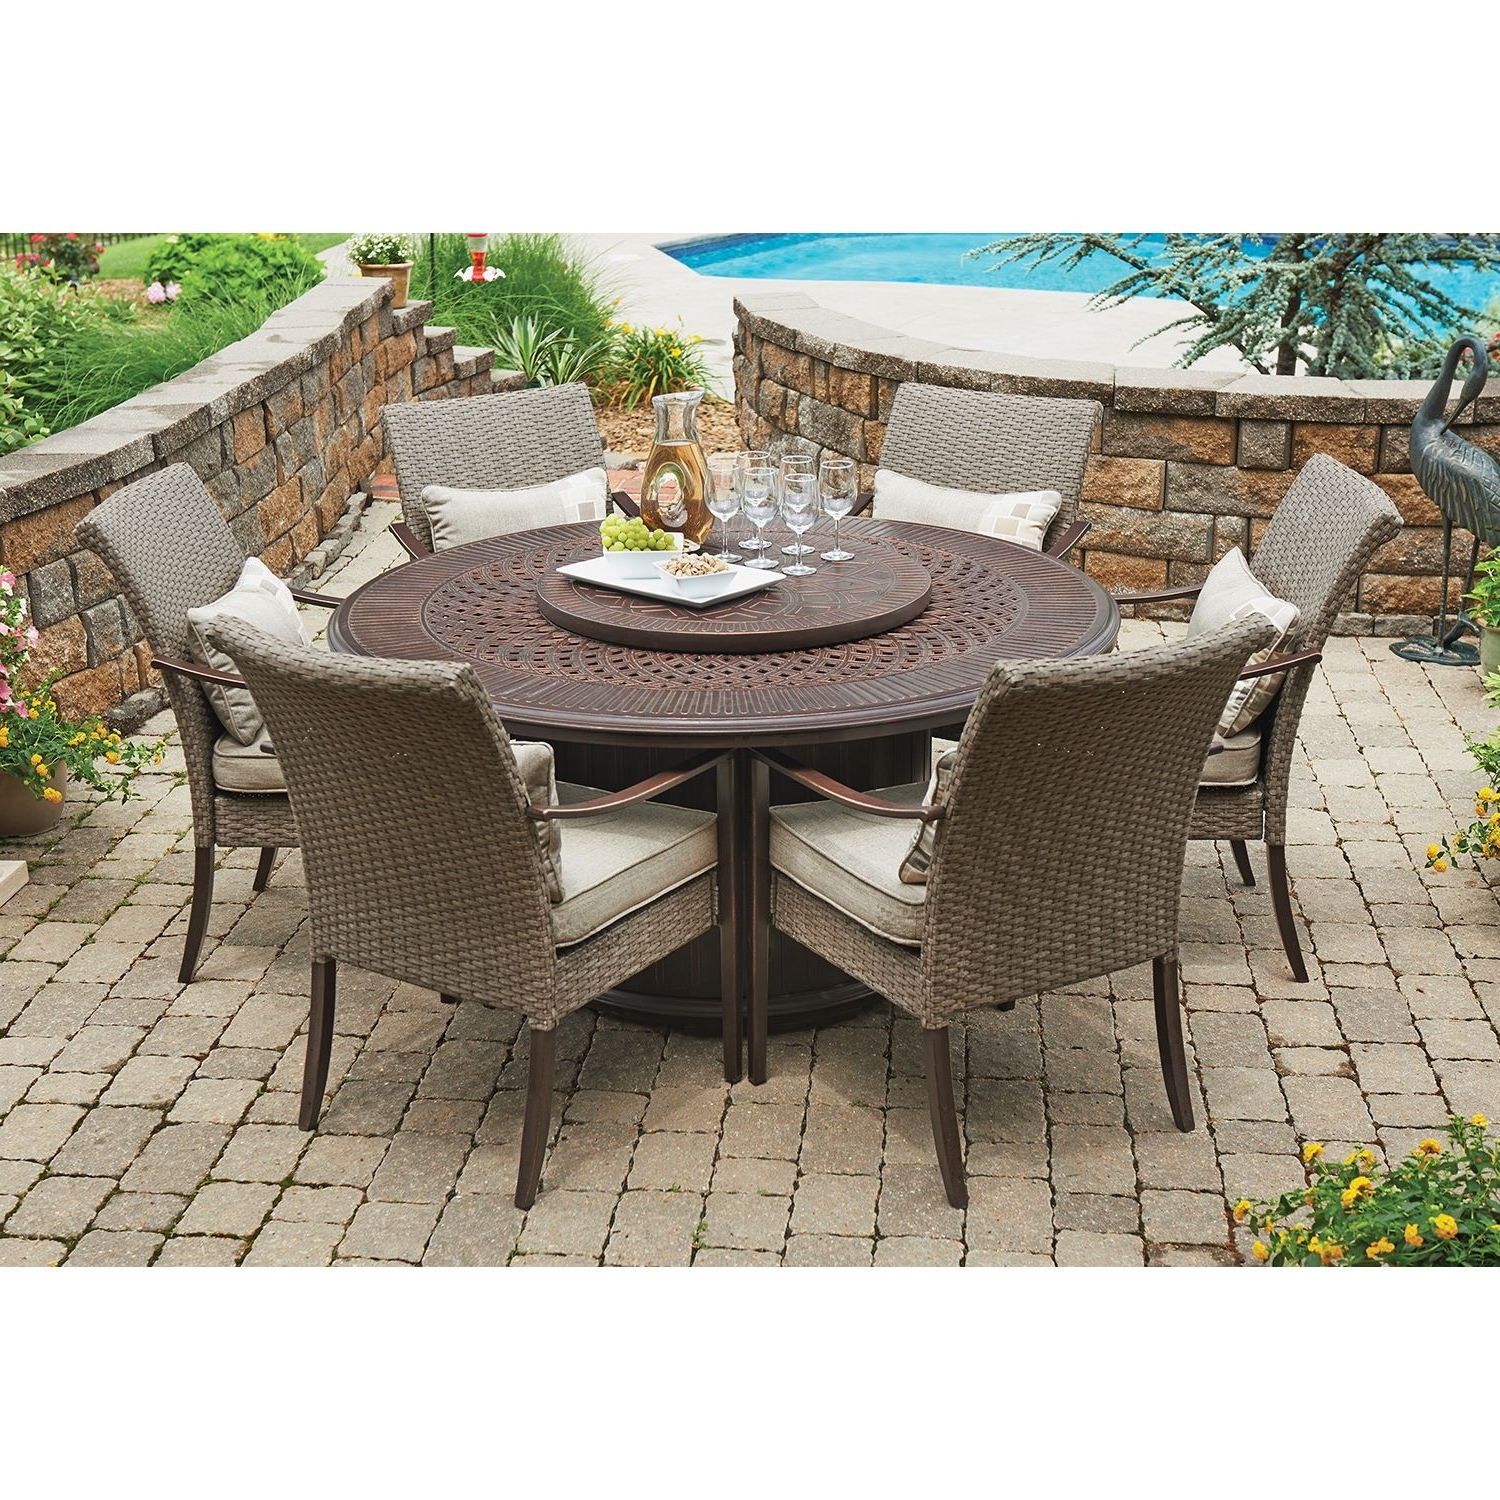 Member's Mark Fairbanks 8 Piece Fire Pit Dining Set – Sam's Club In Latest Sam's Club Chaise Lounge Chairs (View 14 of 15)